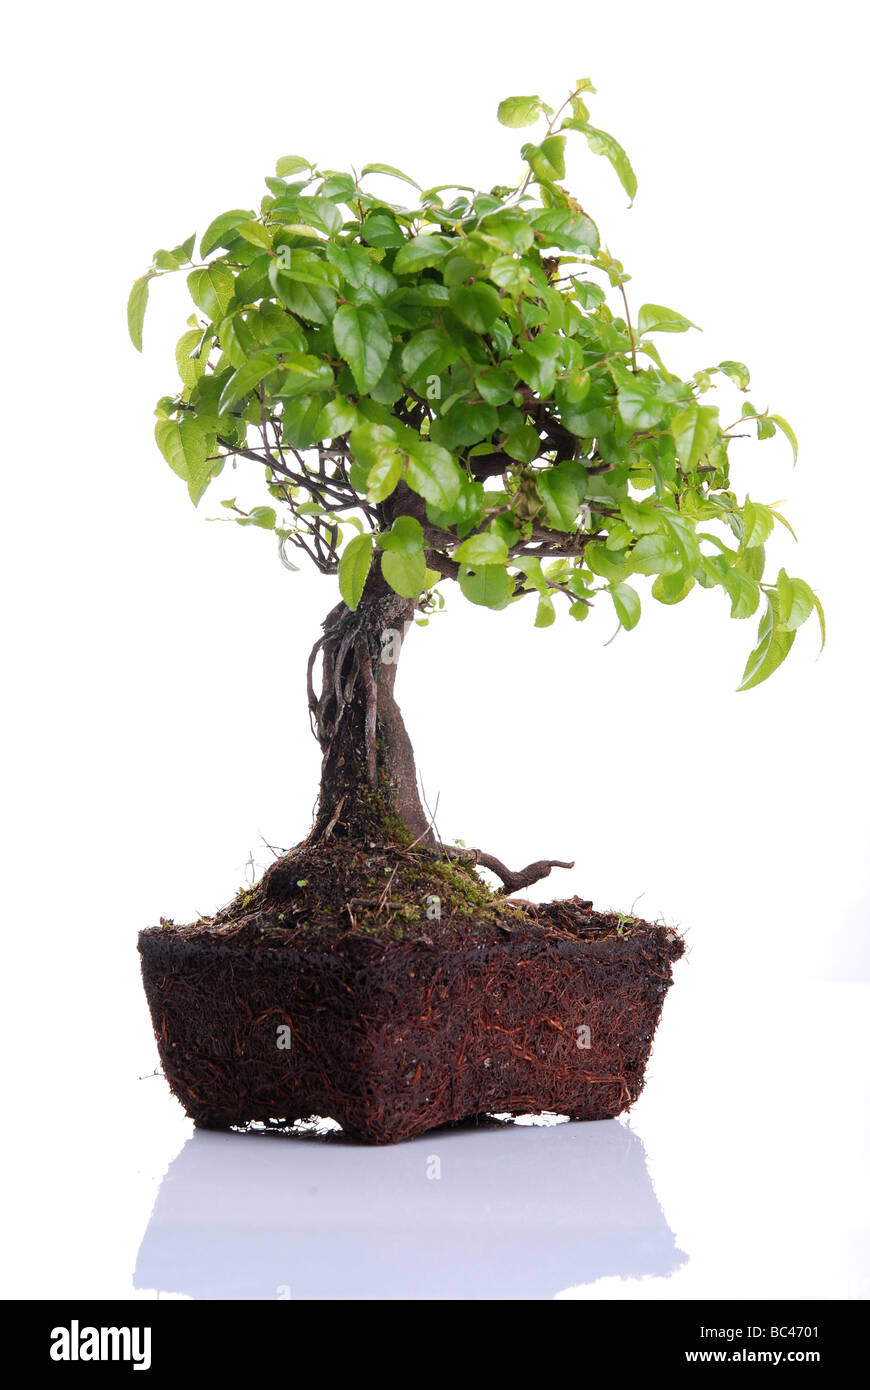 Bonsai tree isolated on a white background - Stock Image